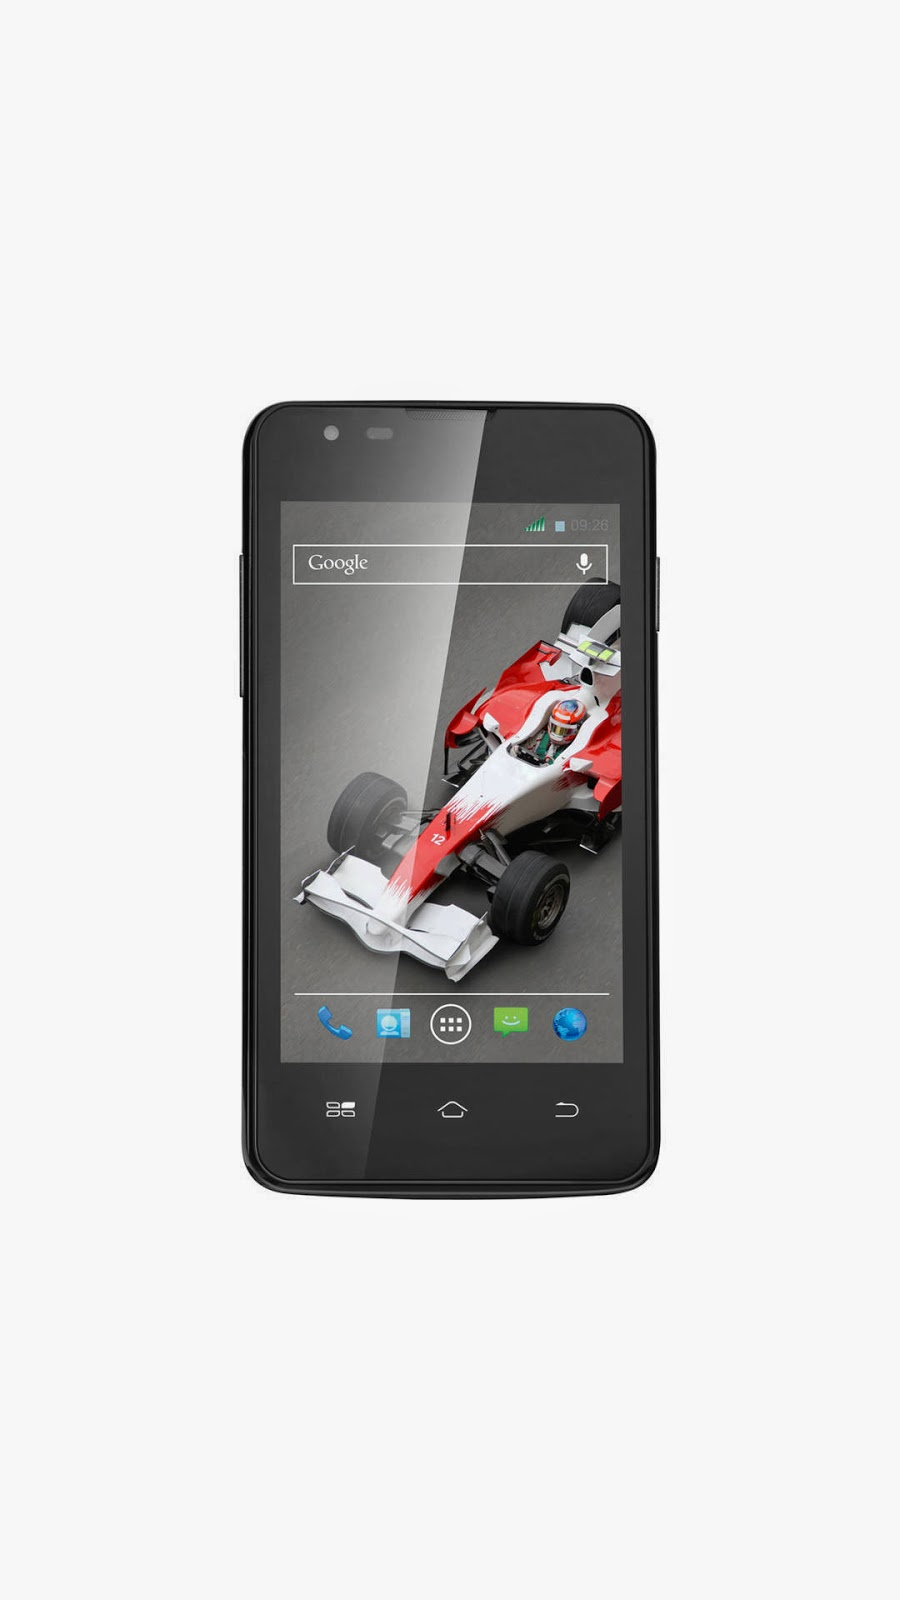 Paytm Shop : Xolo A500L (Black) worth Rs 5999 at Rs 5385 + Rs 400 cash back | cheapest online | Hot Deal